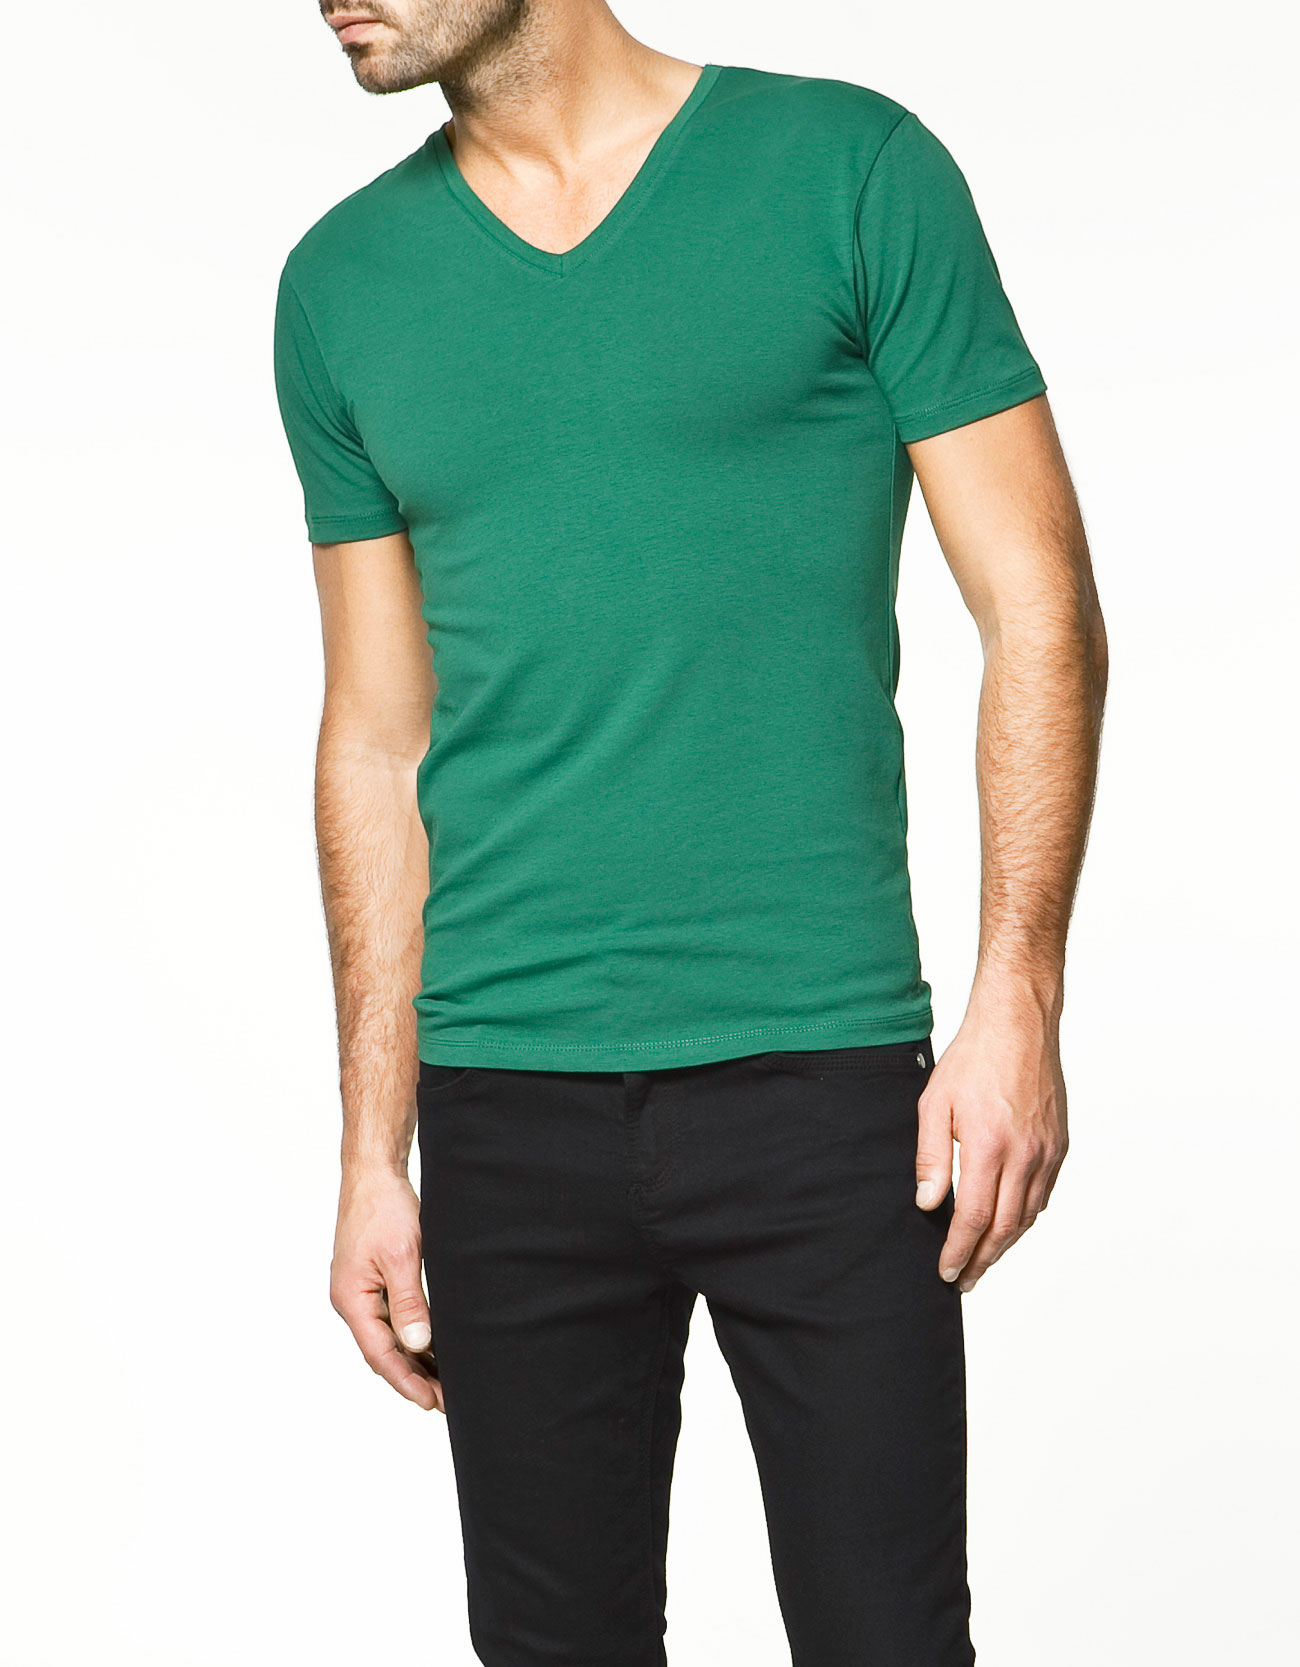 zara super slim fit t shirt in green for men lyst. Black Bedroom Furniture Sets. Home Design Ideas